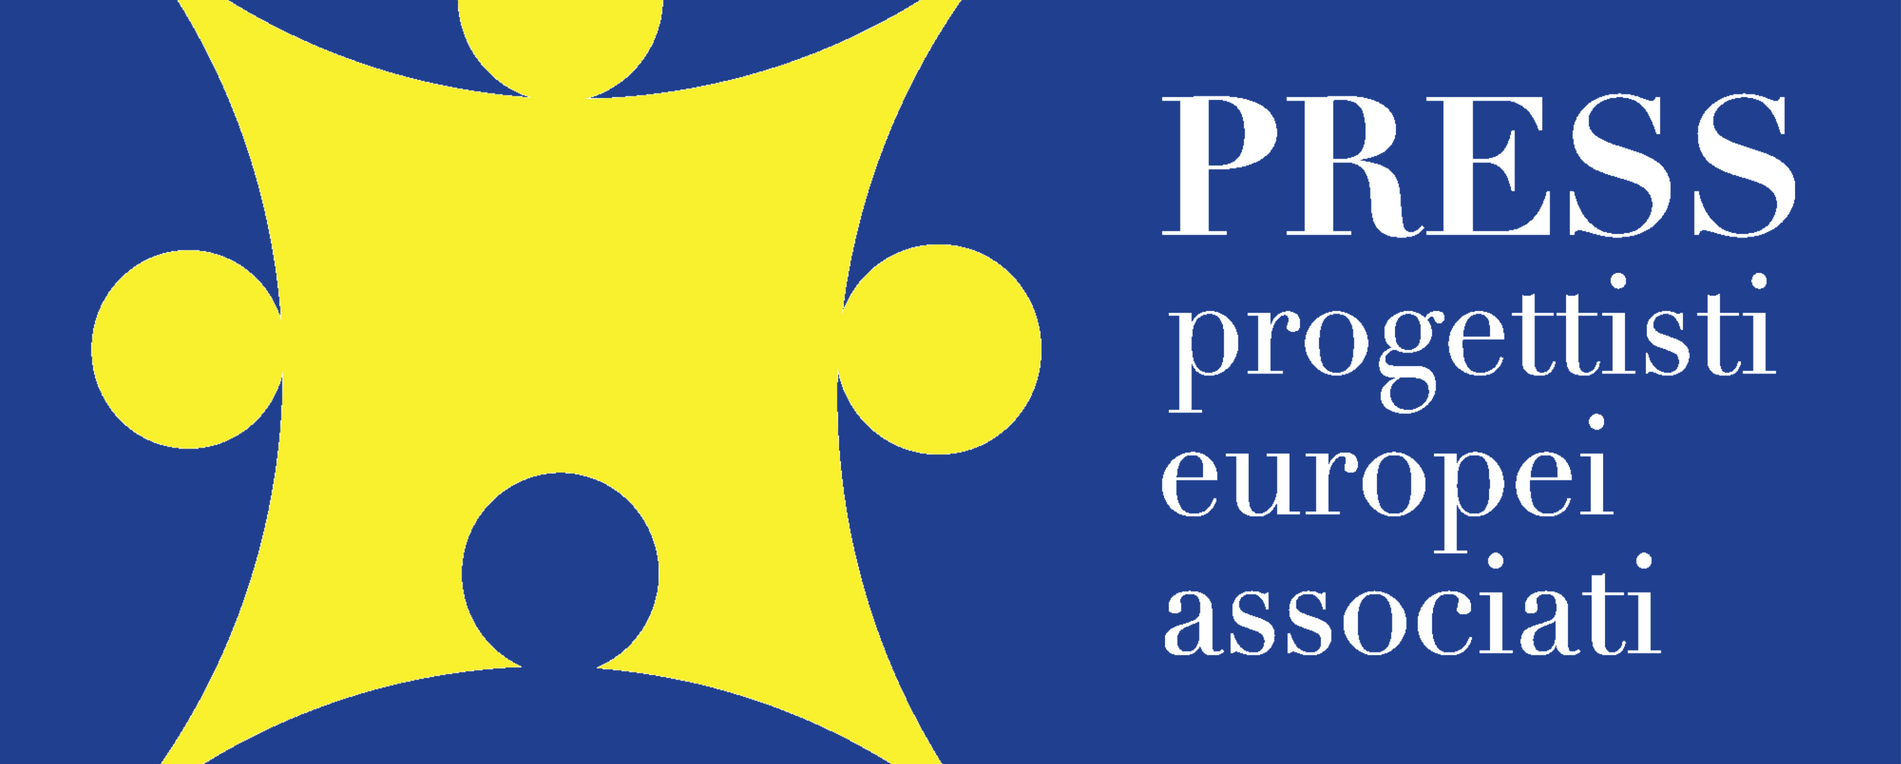 progettisti europei associati logo